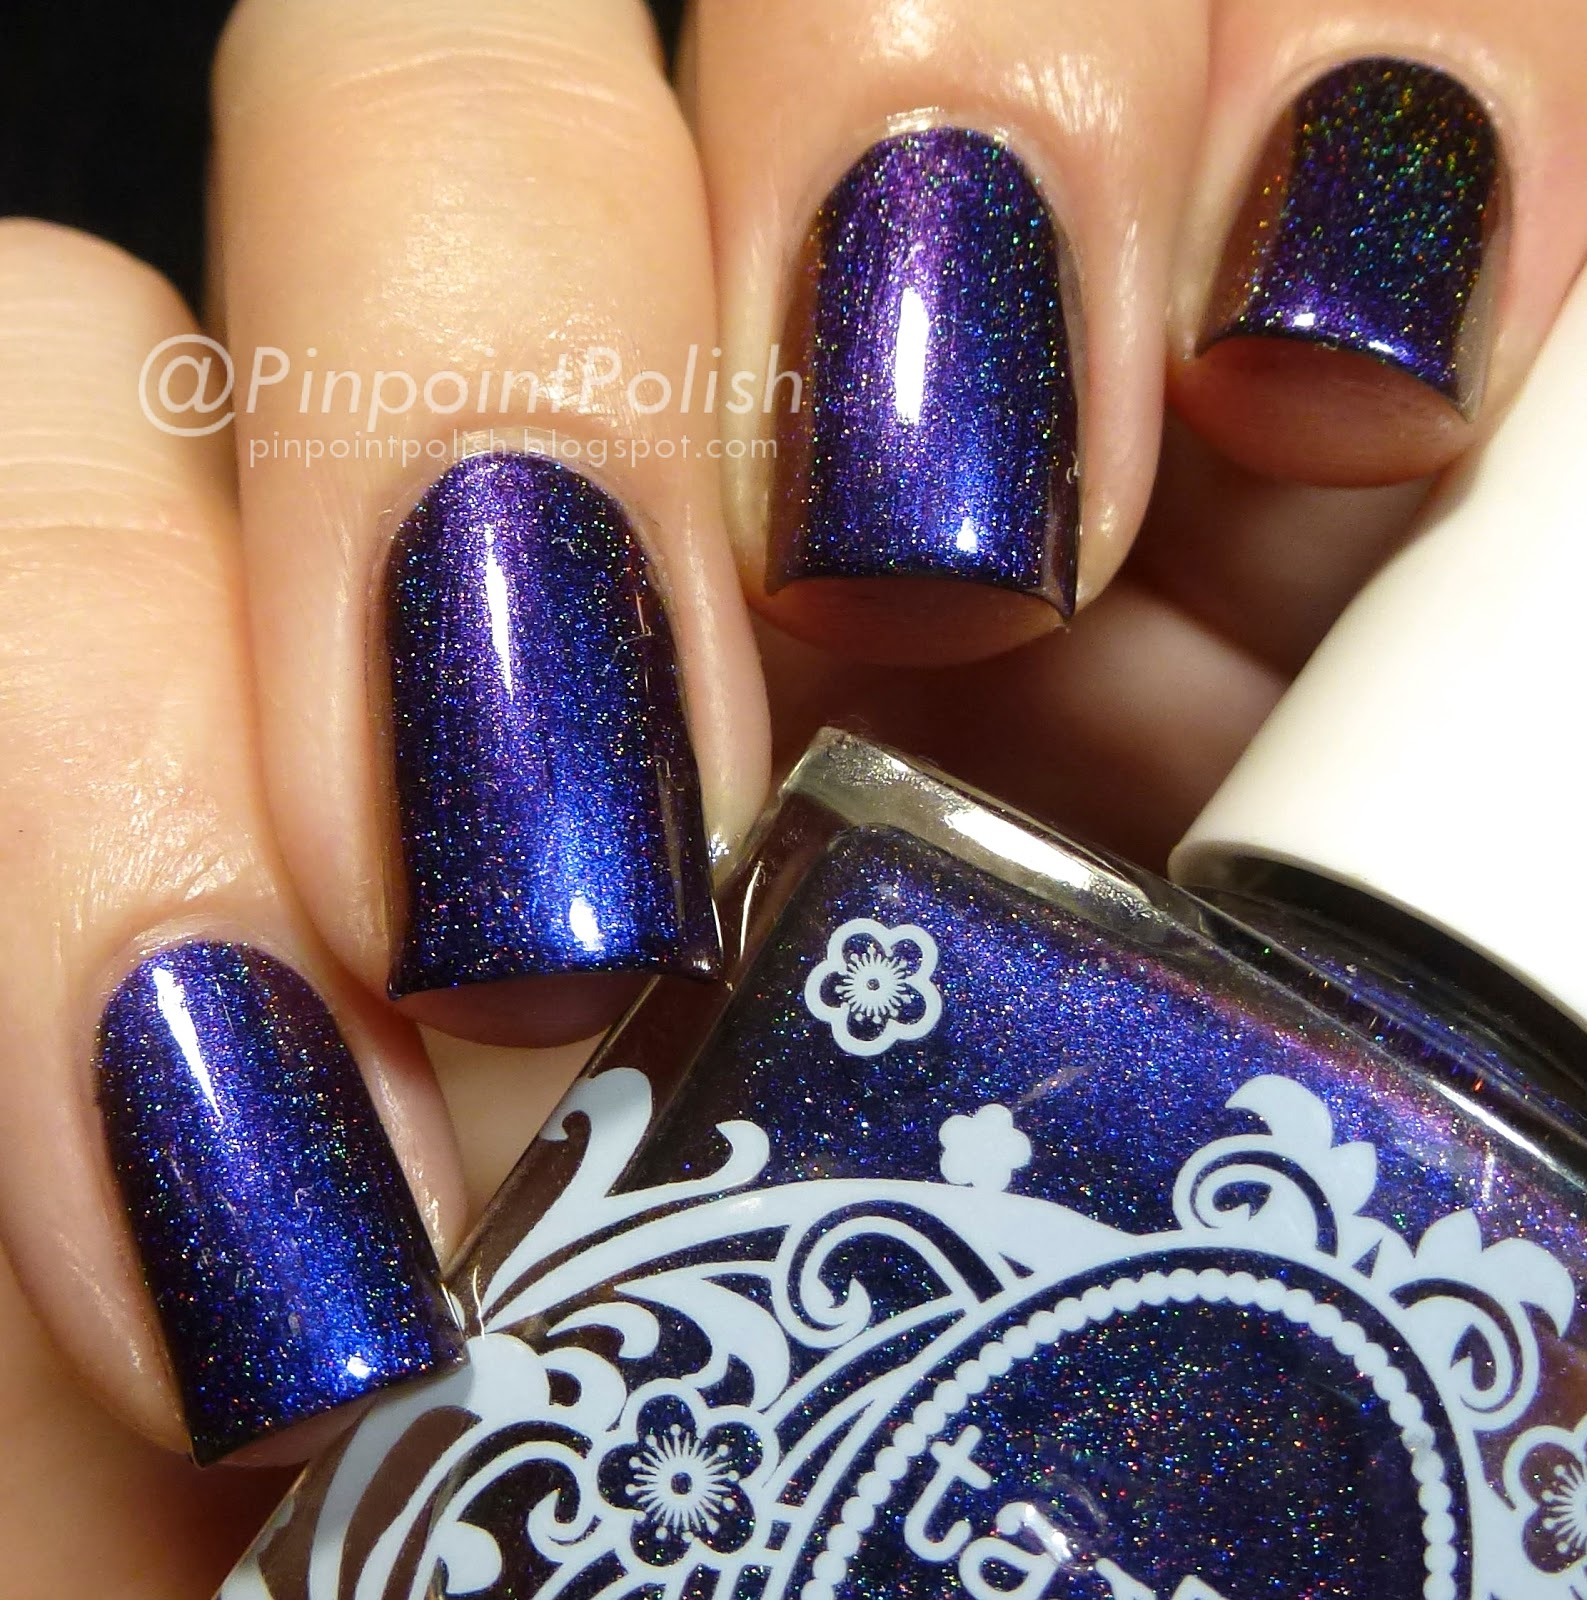 Dazed and confused, takko lacquer, swatch